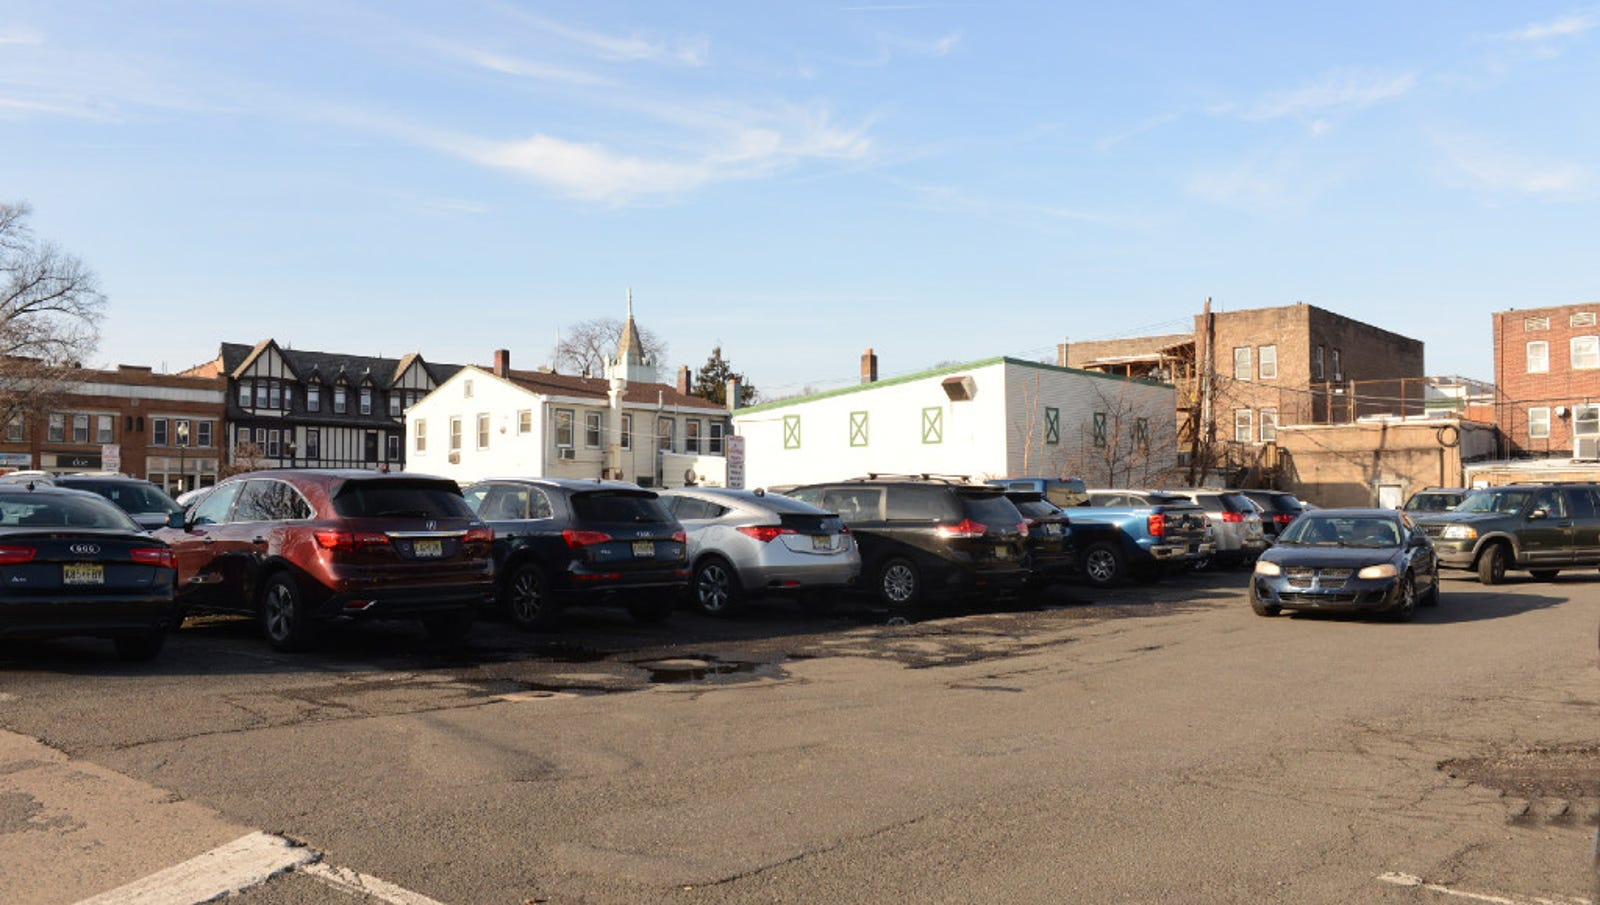 Going out to eat in Ridgewood? Parking may get easier